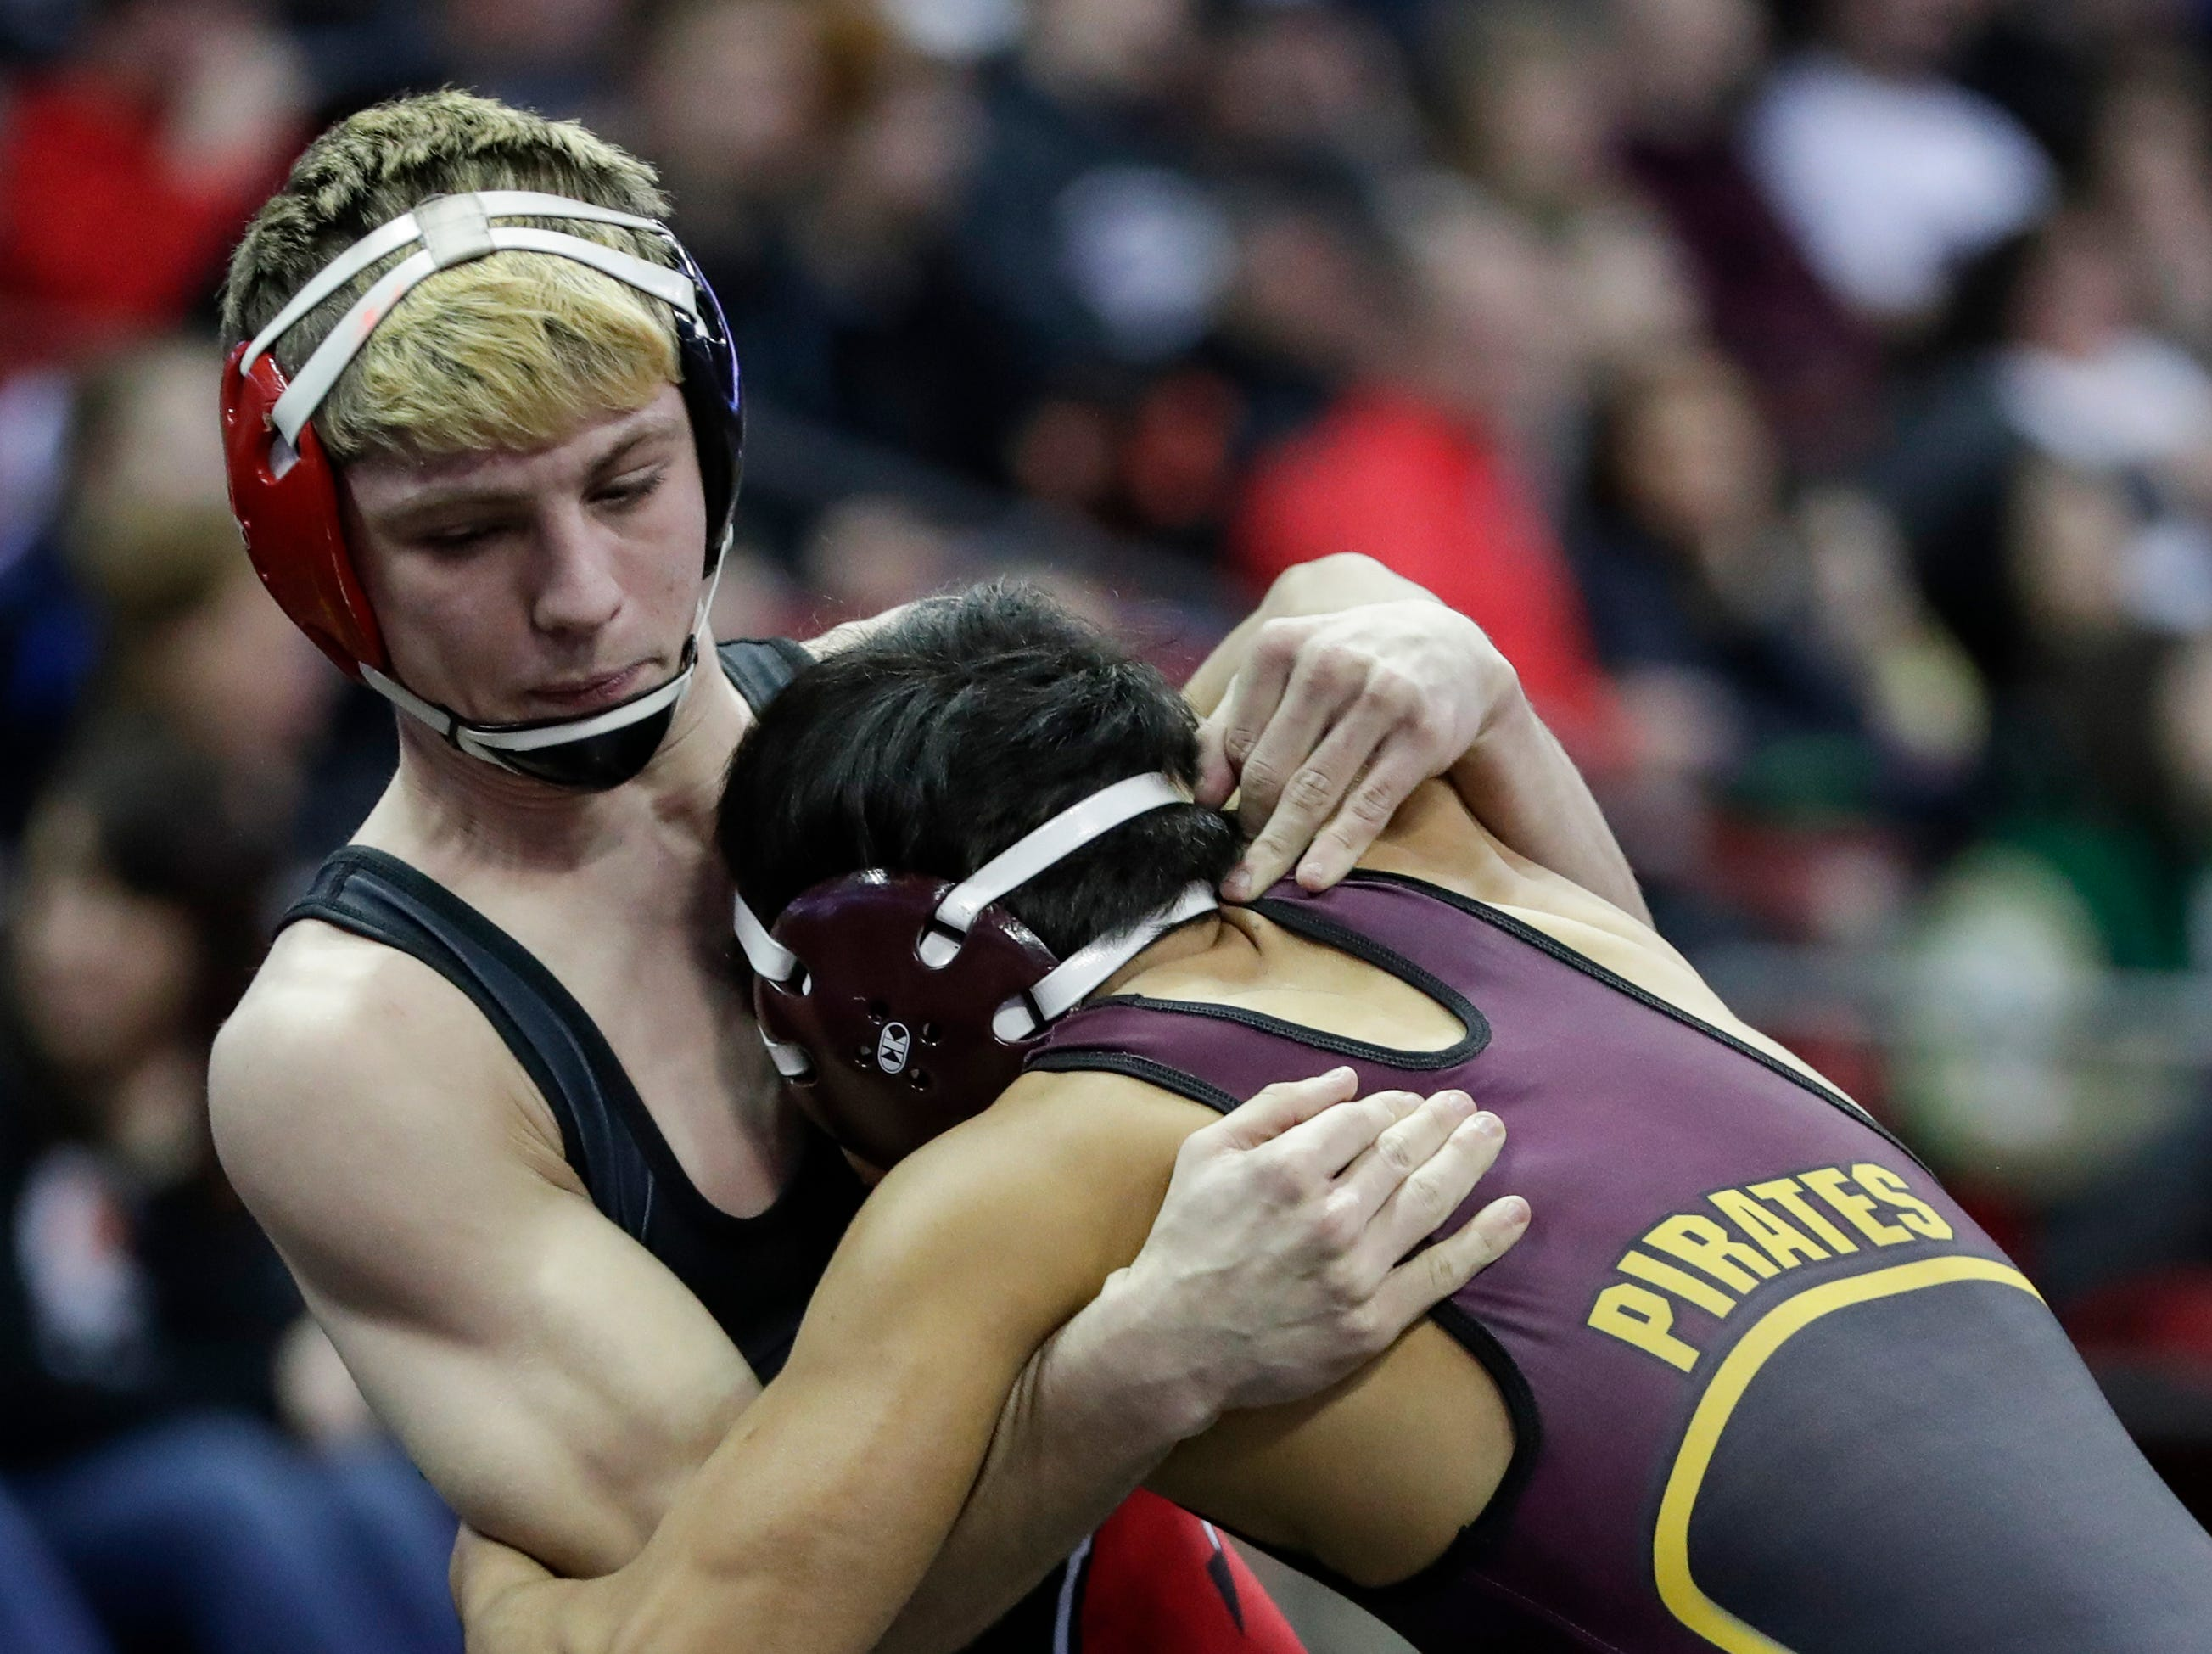 Weyauwega-Fremont's Justin Kempf wrestles Waterloo's Carlos Garcia in a Division 3 132-pound weight class preliminary match during the WIAA state individual wrestling tournament at the Kohl Center Thursday, February 21, 2019, in Madison, Wis.